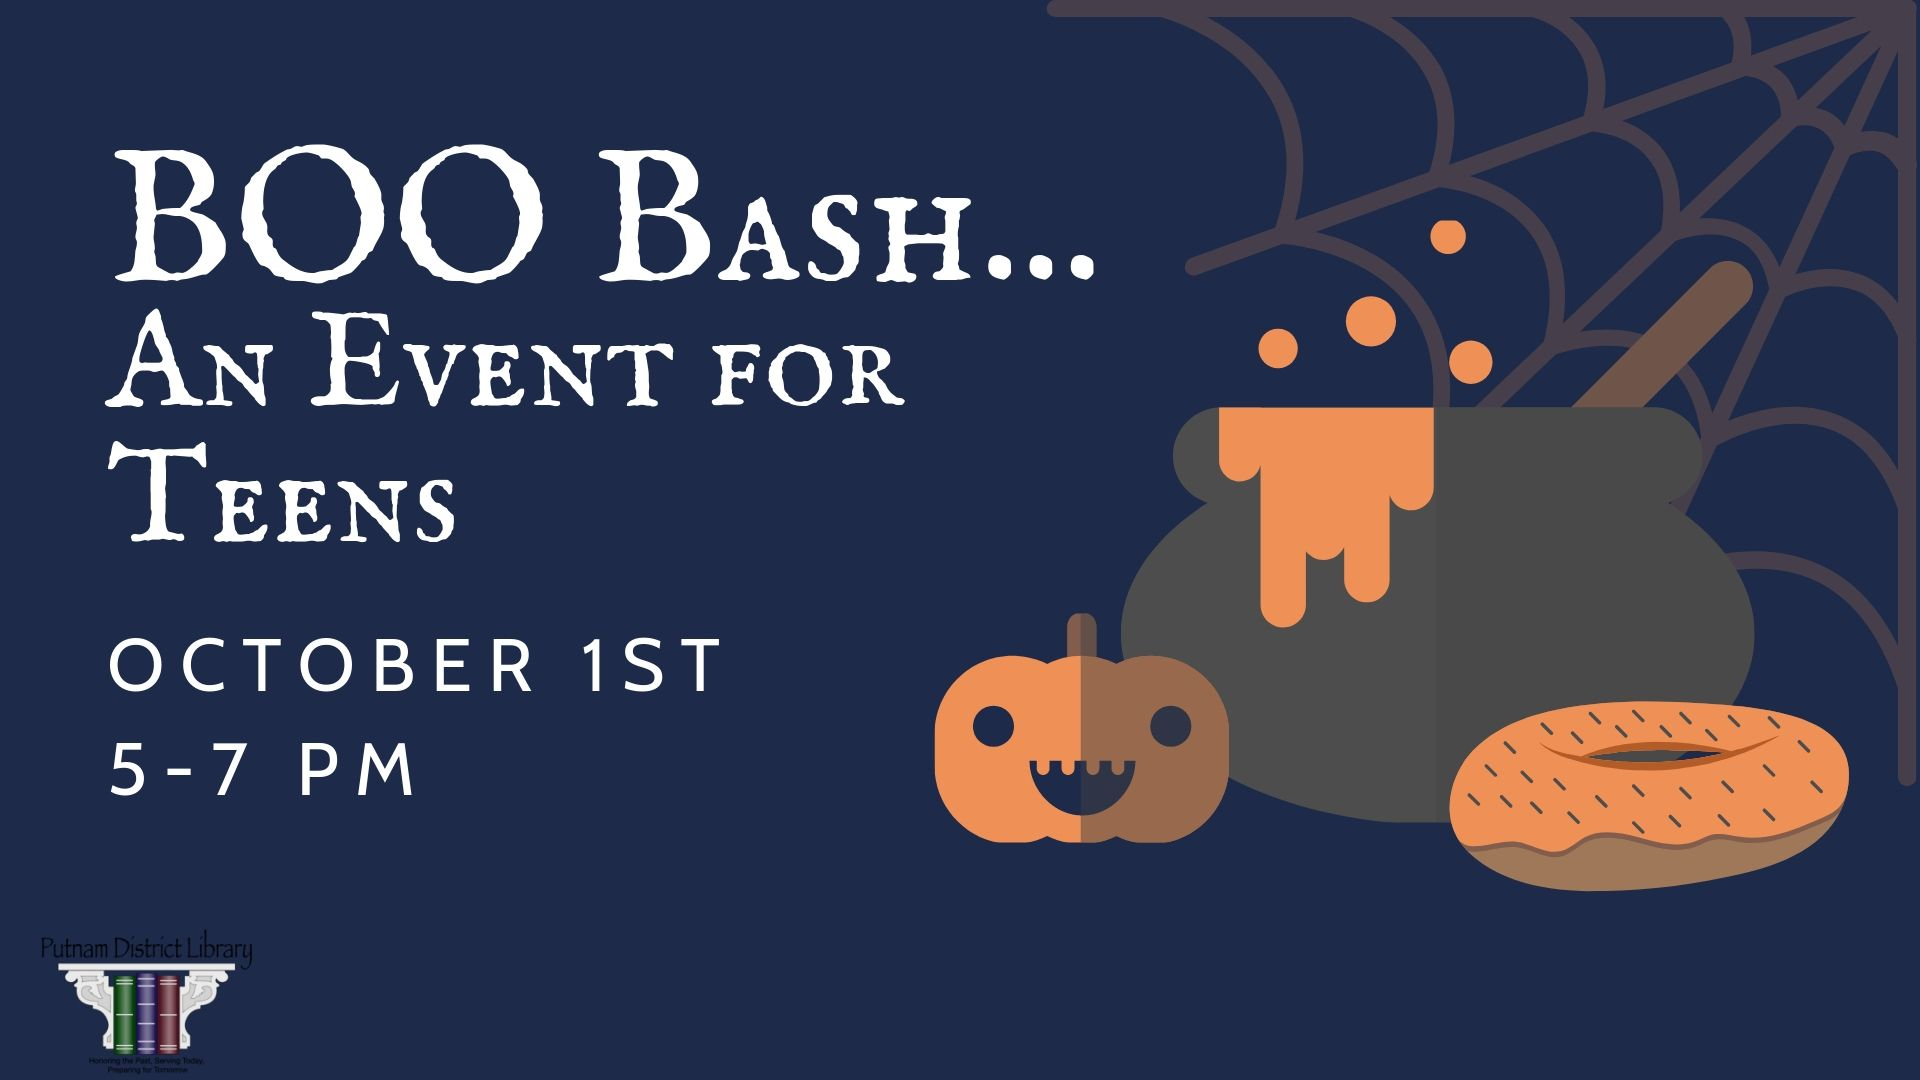 Boo Bash: An Event for Teens